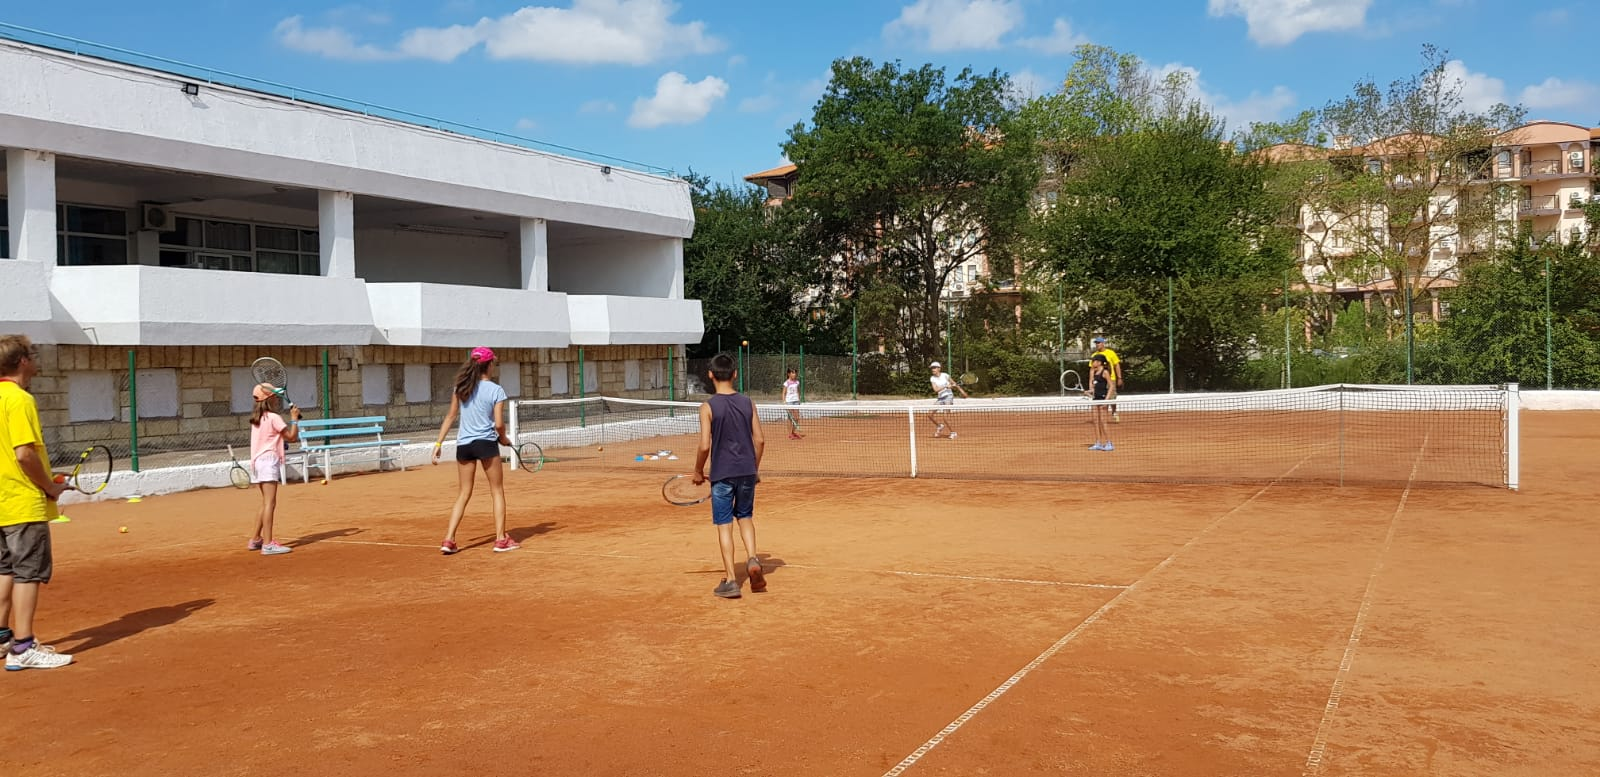 language vacations for kids at Bulgarian seaside Z camp, Day 27 - tennis court - six children are trained